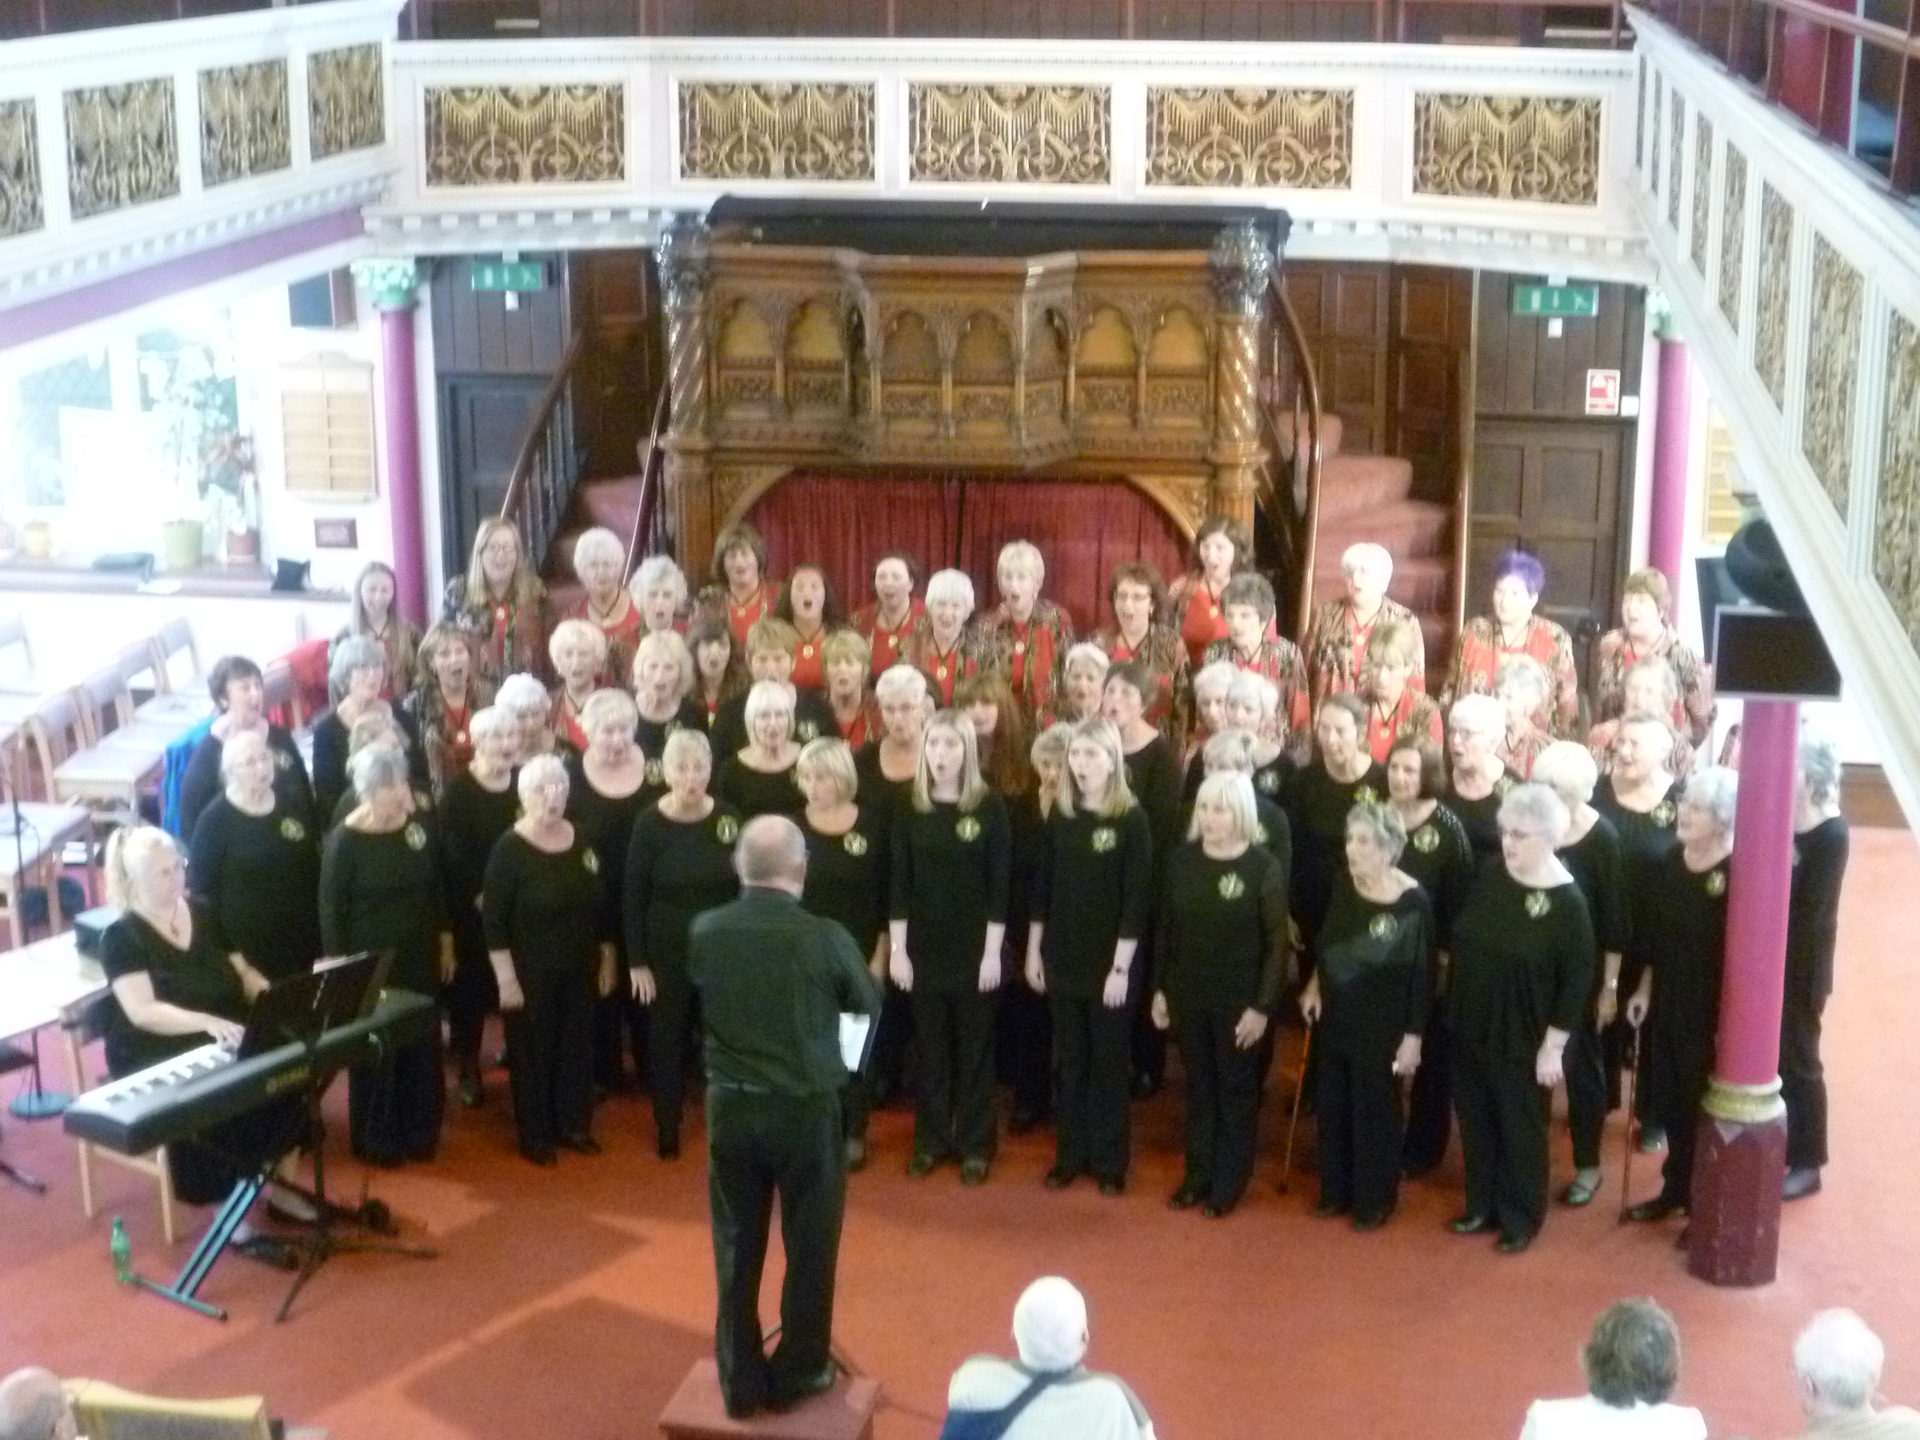 Concert with the Penzance Orpheus Ladies Choir